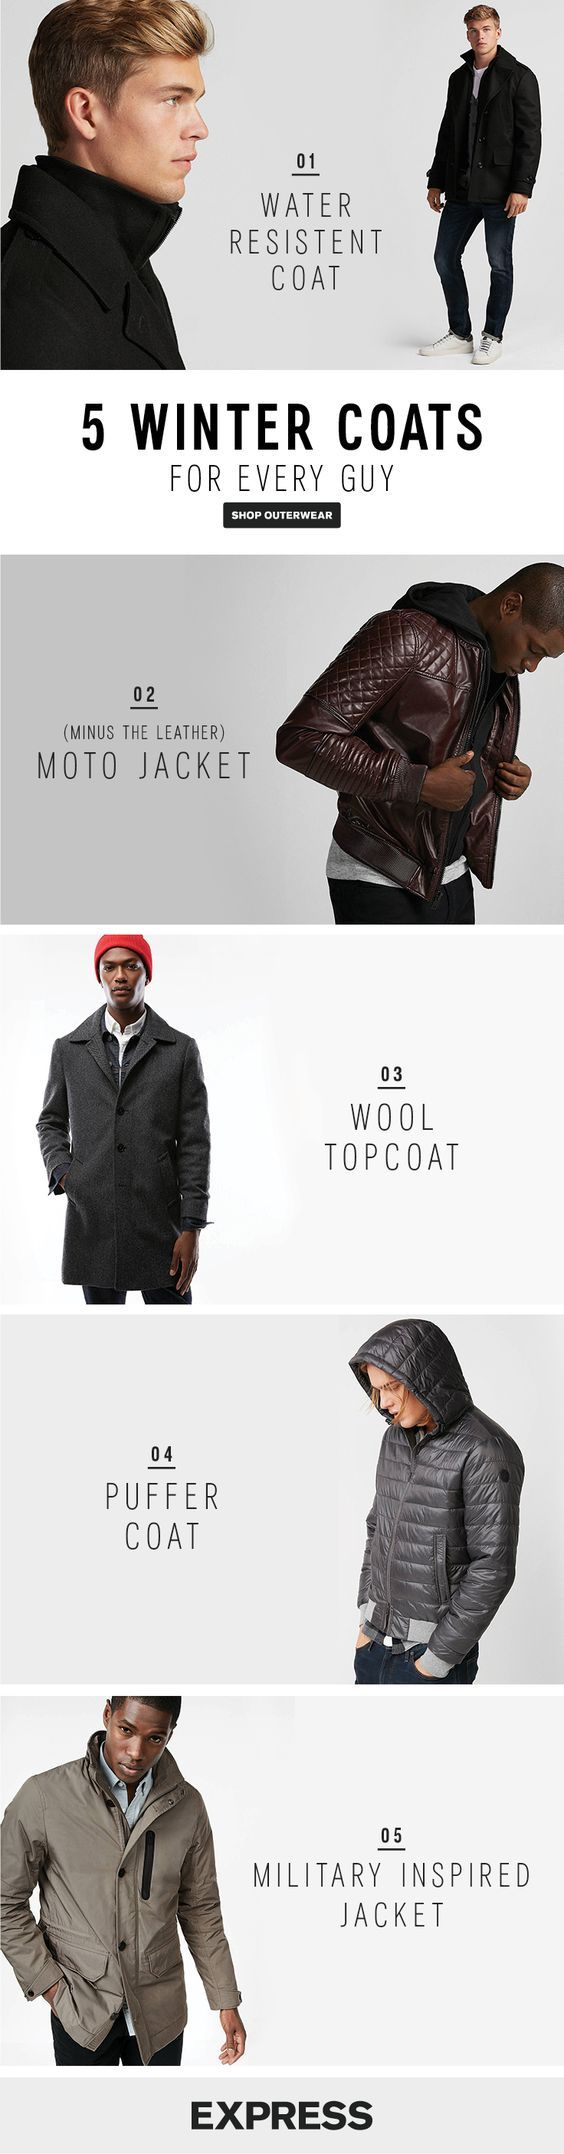 Shop the 5 best winter coats for men at Express and stay warm all season. For the guy who is used to unpredictable weather, a rain coat will keep you dry and stylish. For the eco-friendly guy, go for a recycled wool topcoat or a (minus the) leather moto jacket is best. For the street style guy, a puffer coat is a closet must-have. For the guy who loves style, a military-inspired coat is perfect. Shop them all at Express.